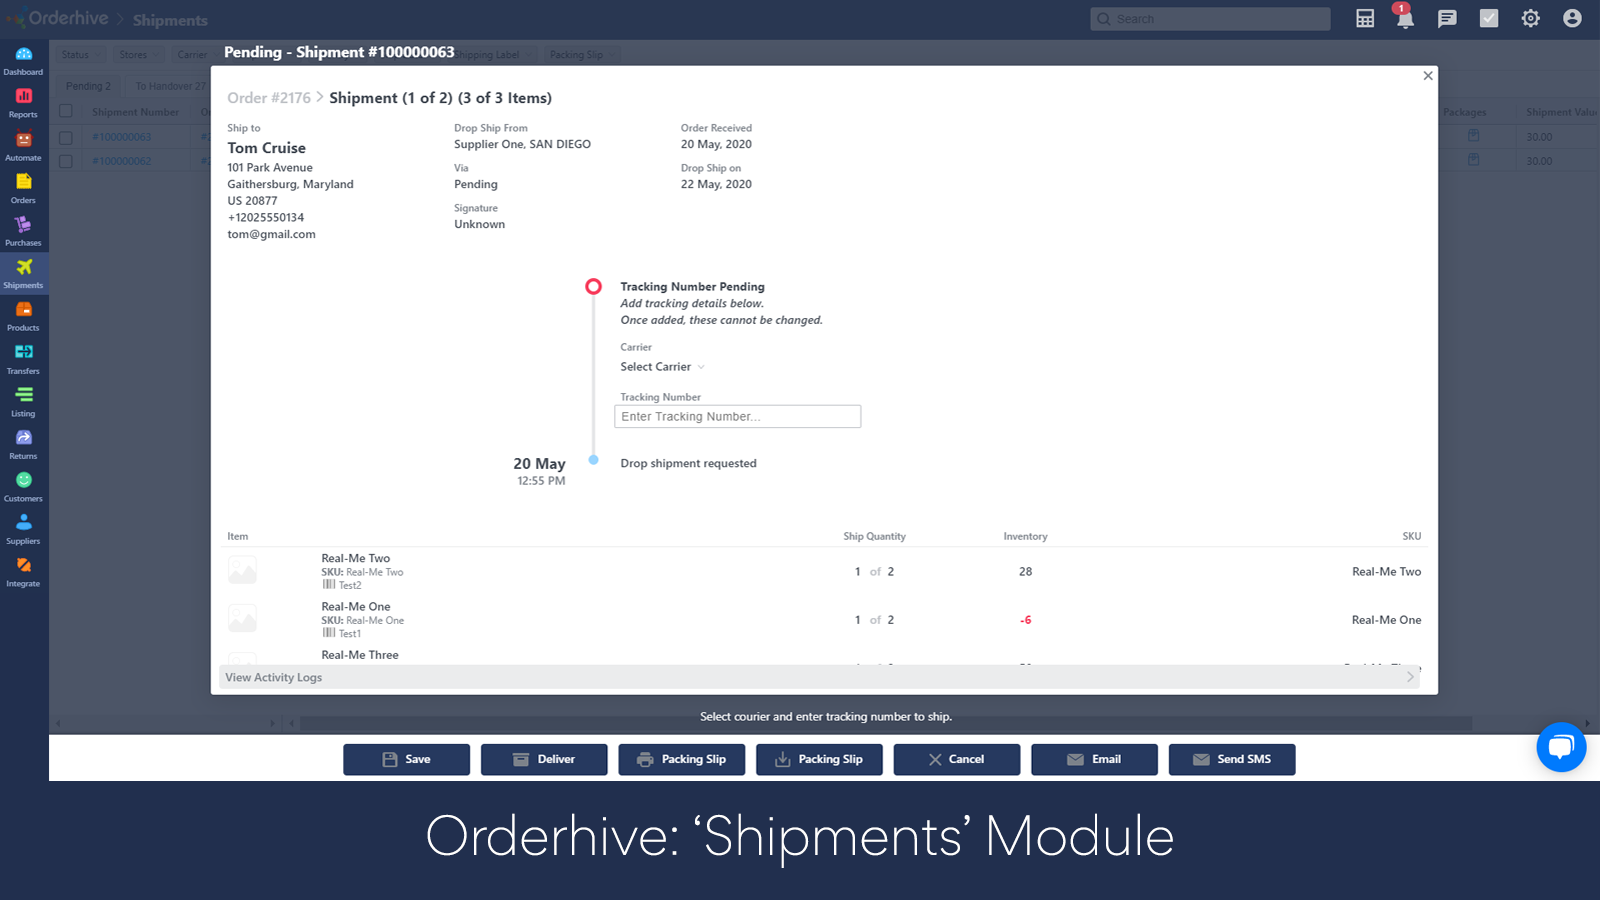 Shipment Tracking Page